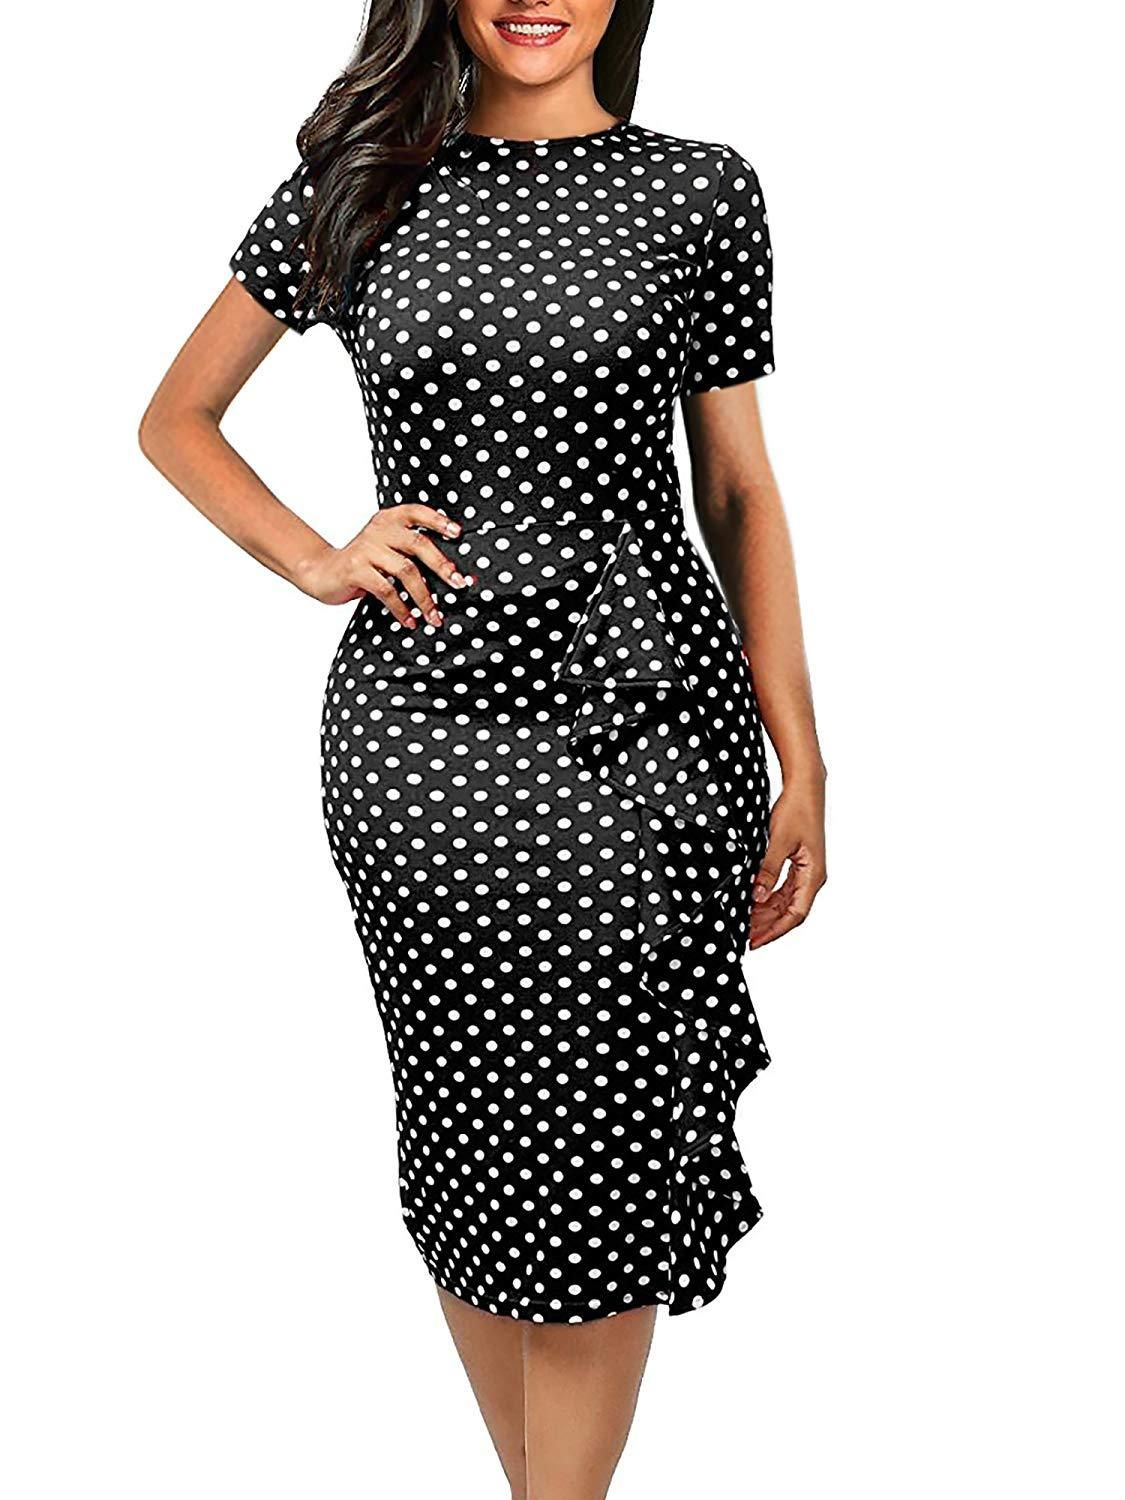 4d1258407c5e Women s Vintage Short Sleeve Slim Fit Pencil Dress in 2019 ...